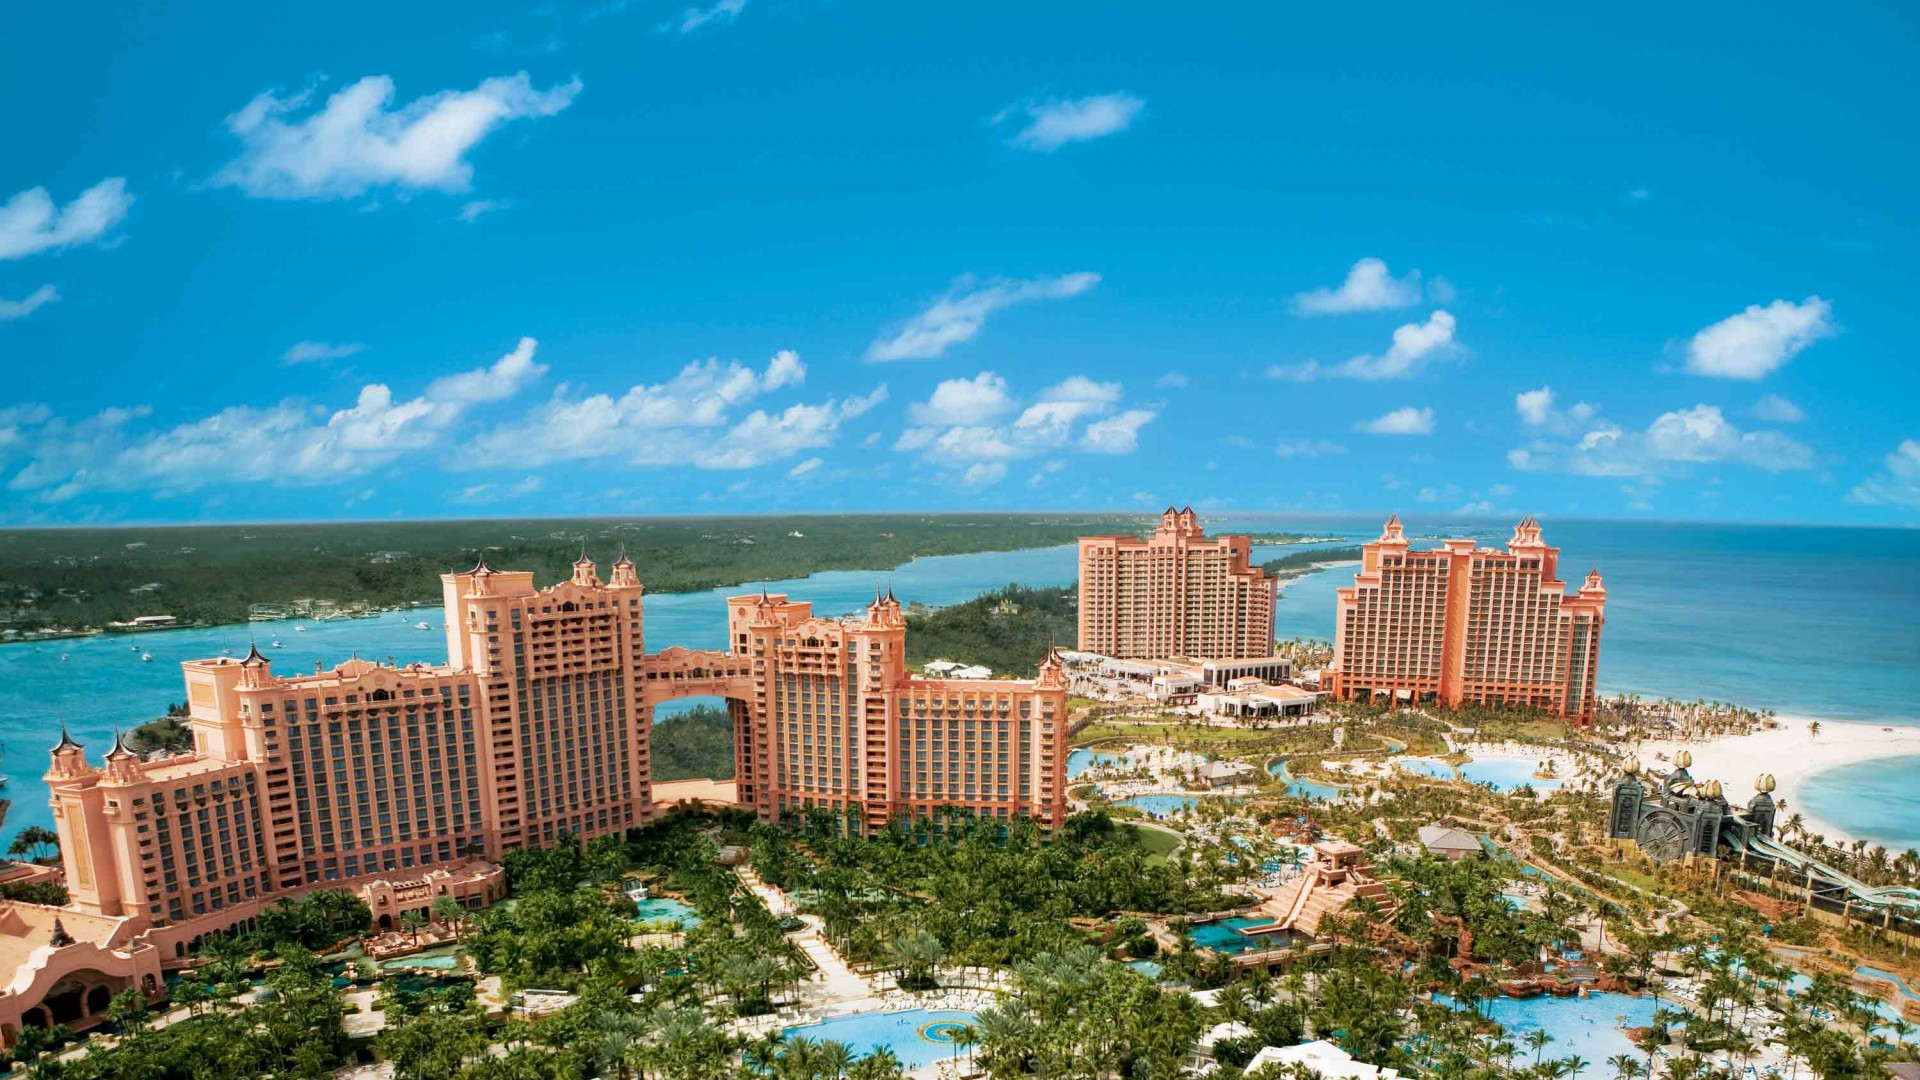 atlantis paradise island resort casino improving performance with a new vision and mission Business essays: atlantis paradise island resort & casino: improving performance with a new vision and vission.